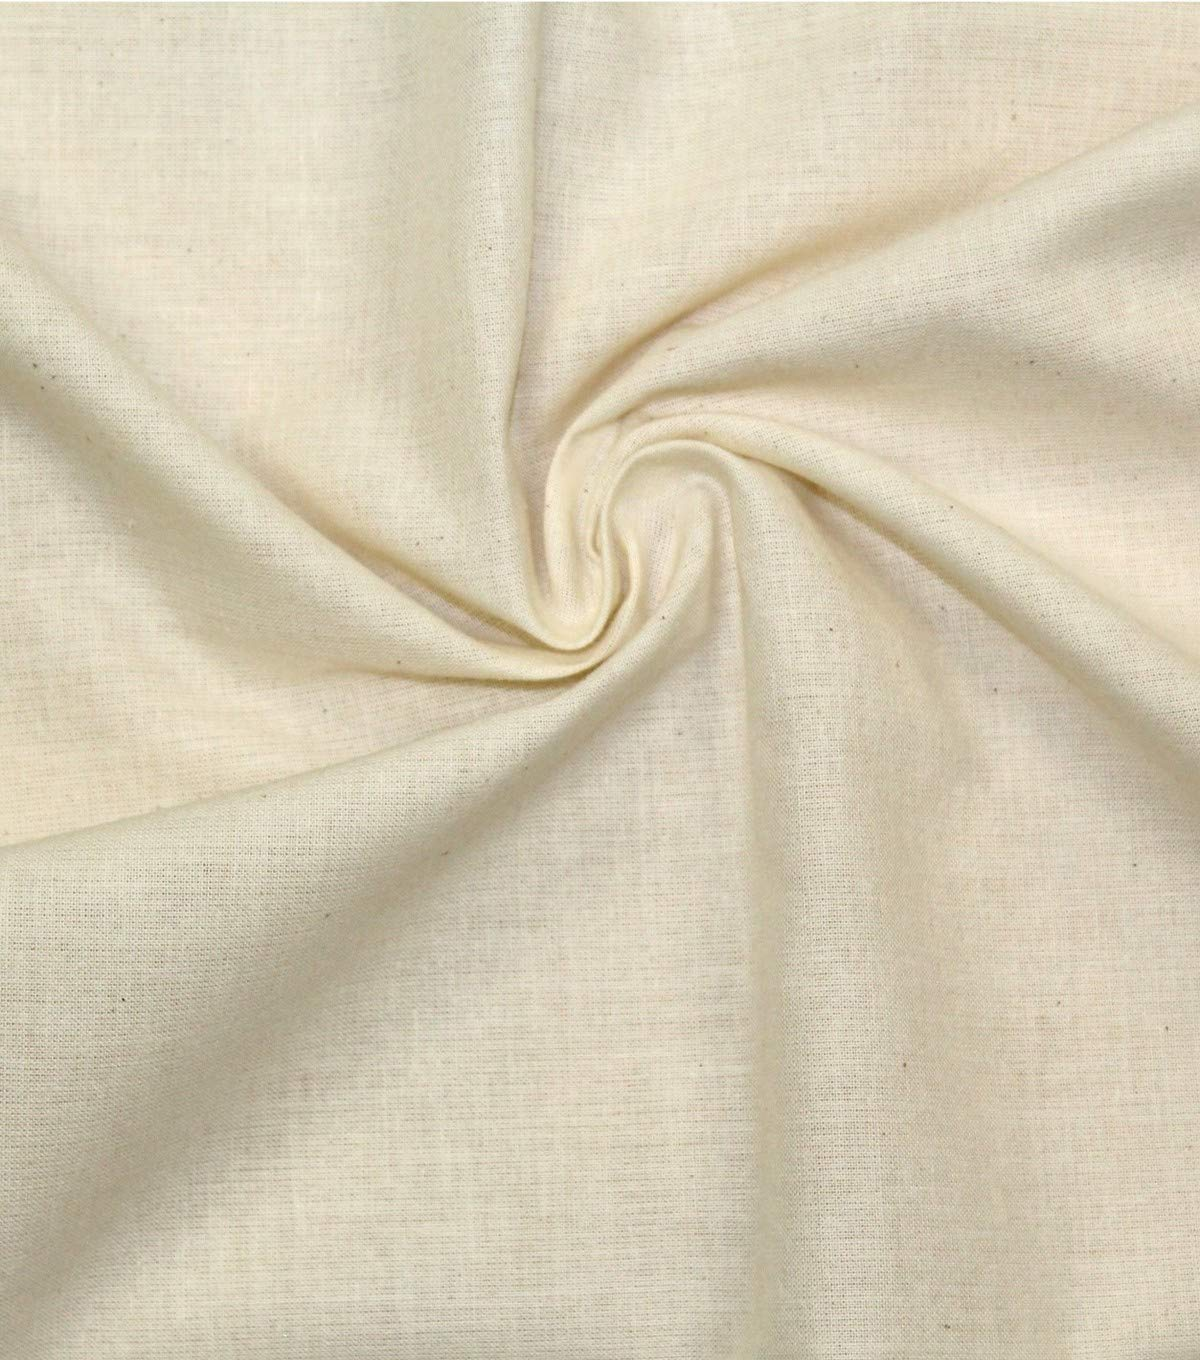 Rockland 86230 200 Count Muslin, Unbleached/Natural by Rockland (Image #5)